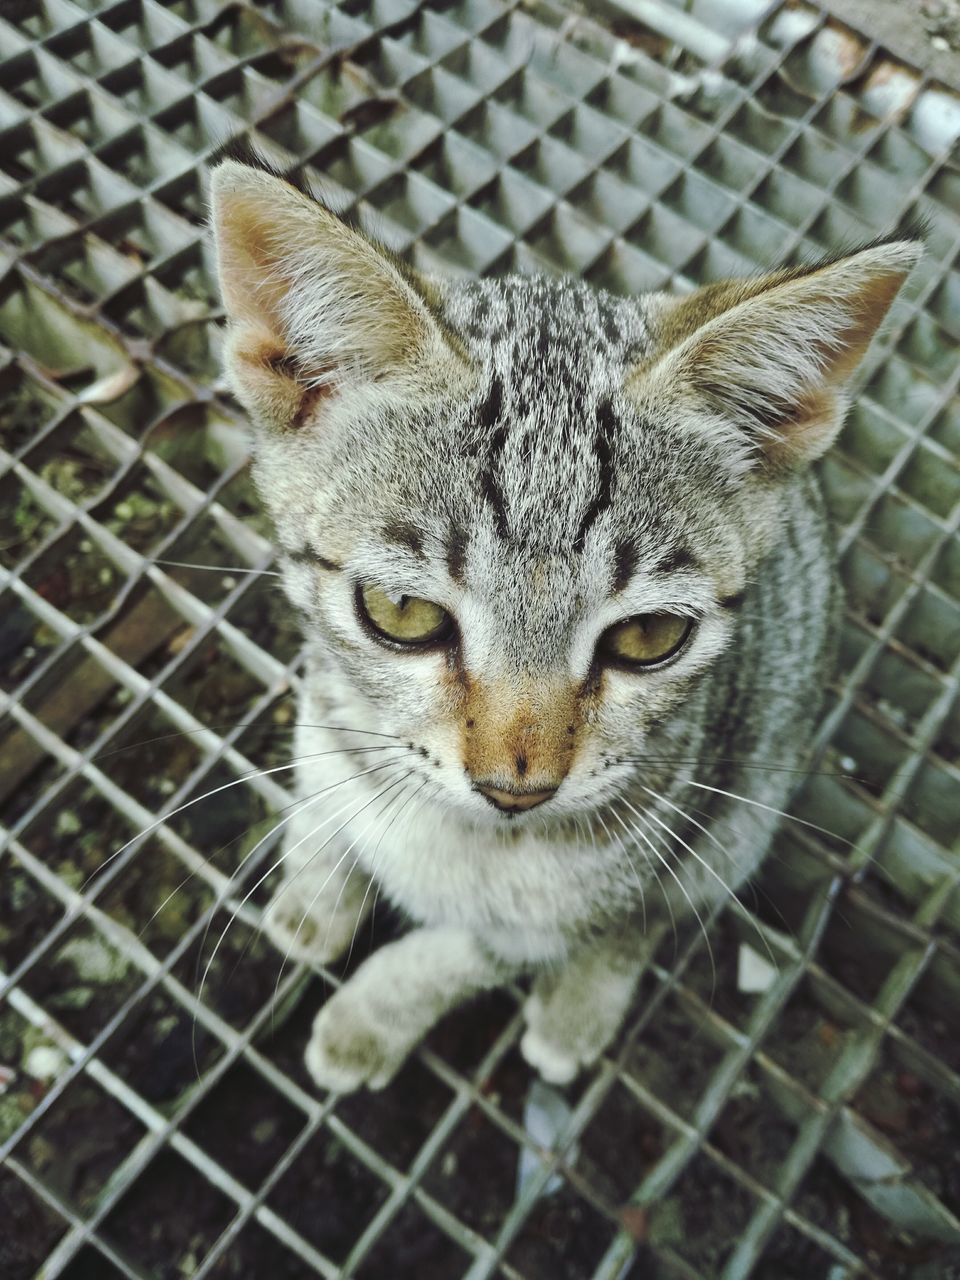 domestic cat, animal themes, one animal, domestic animals, pets, feline, cat, mammal, looking at camera, portrait, no people, day, close-up, cage, outdoors